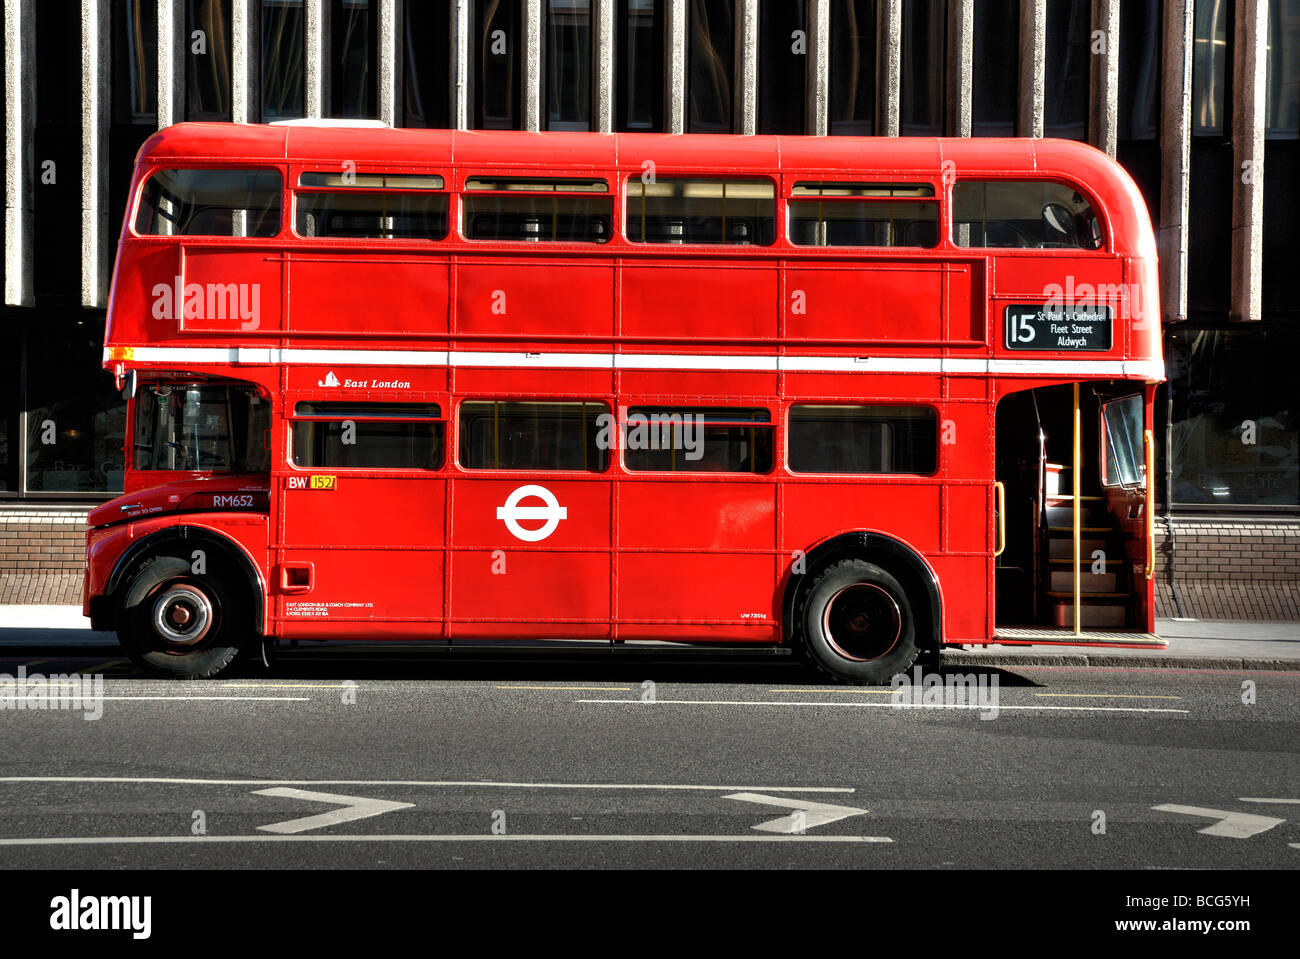 no 15 london bus with no advertising side view stockfoto lizenzfreies bild 24942165 alamy. Black Bedroom Furniture Sets. Home Design Ideas